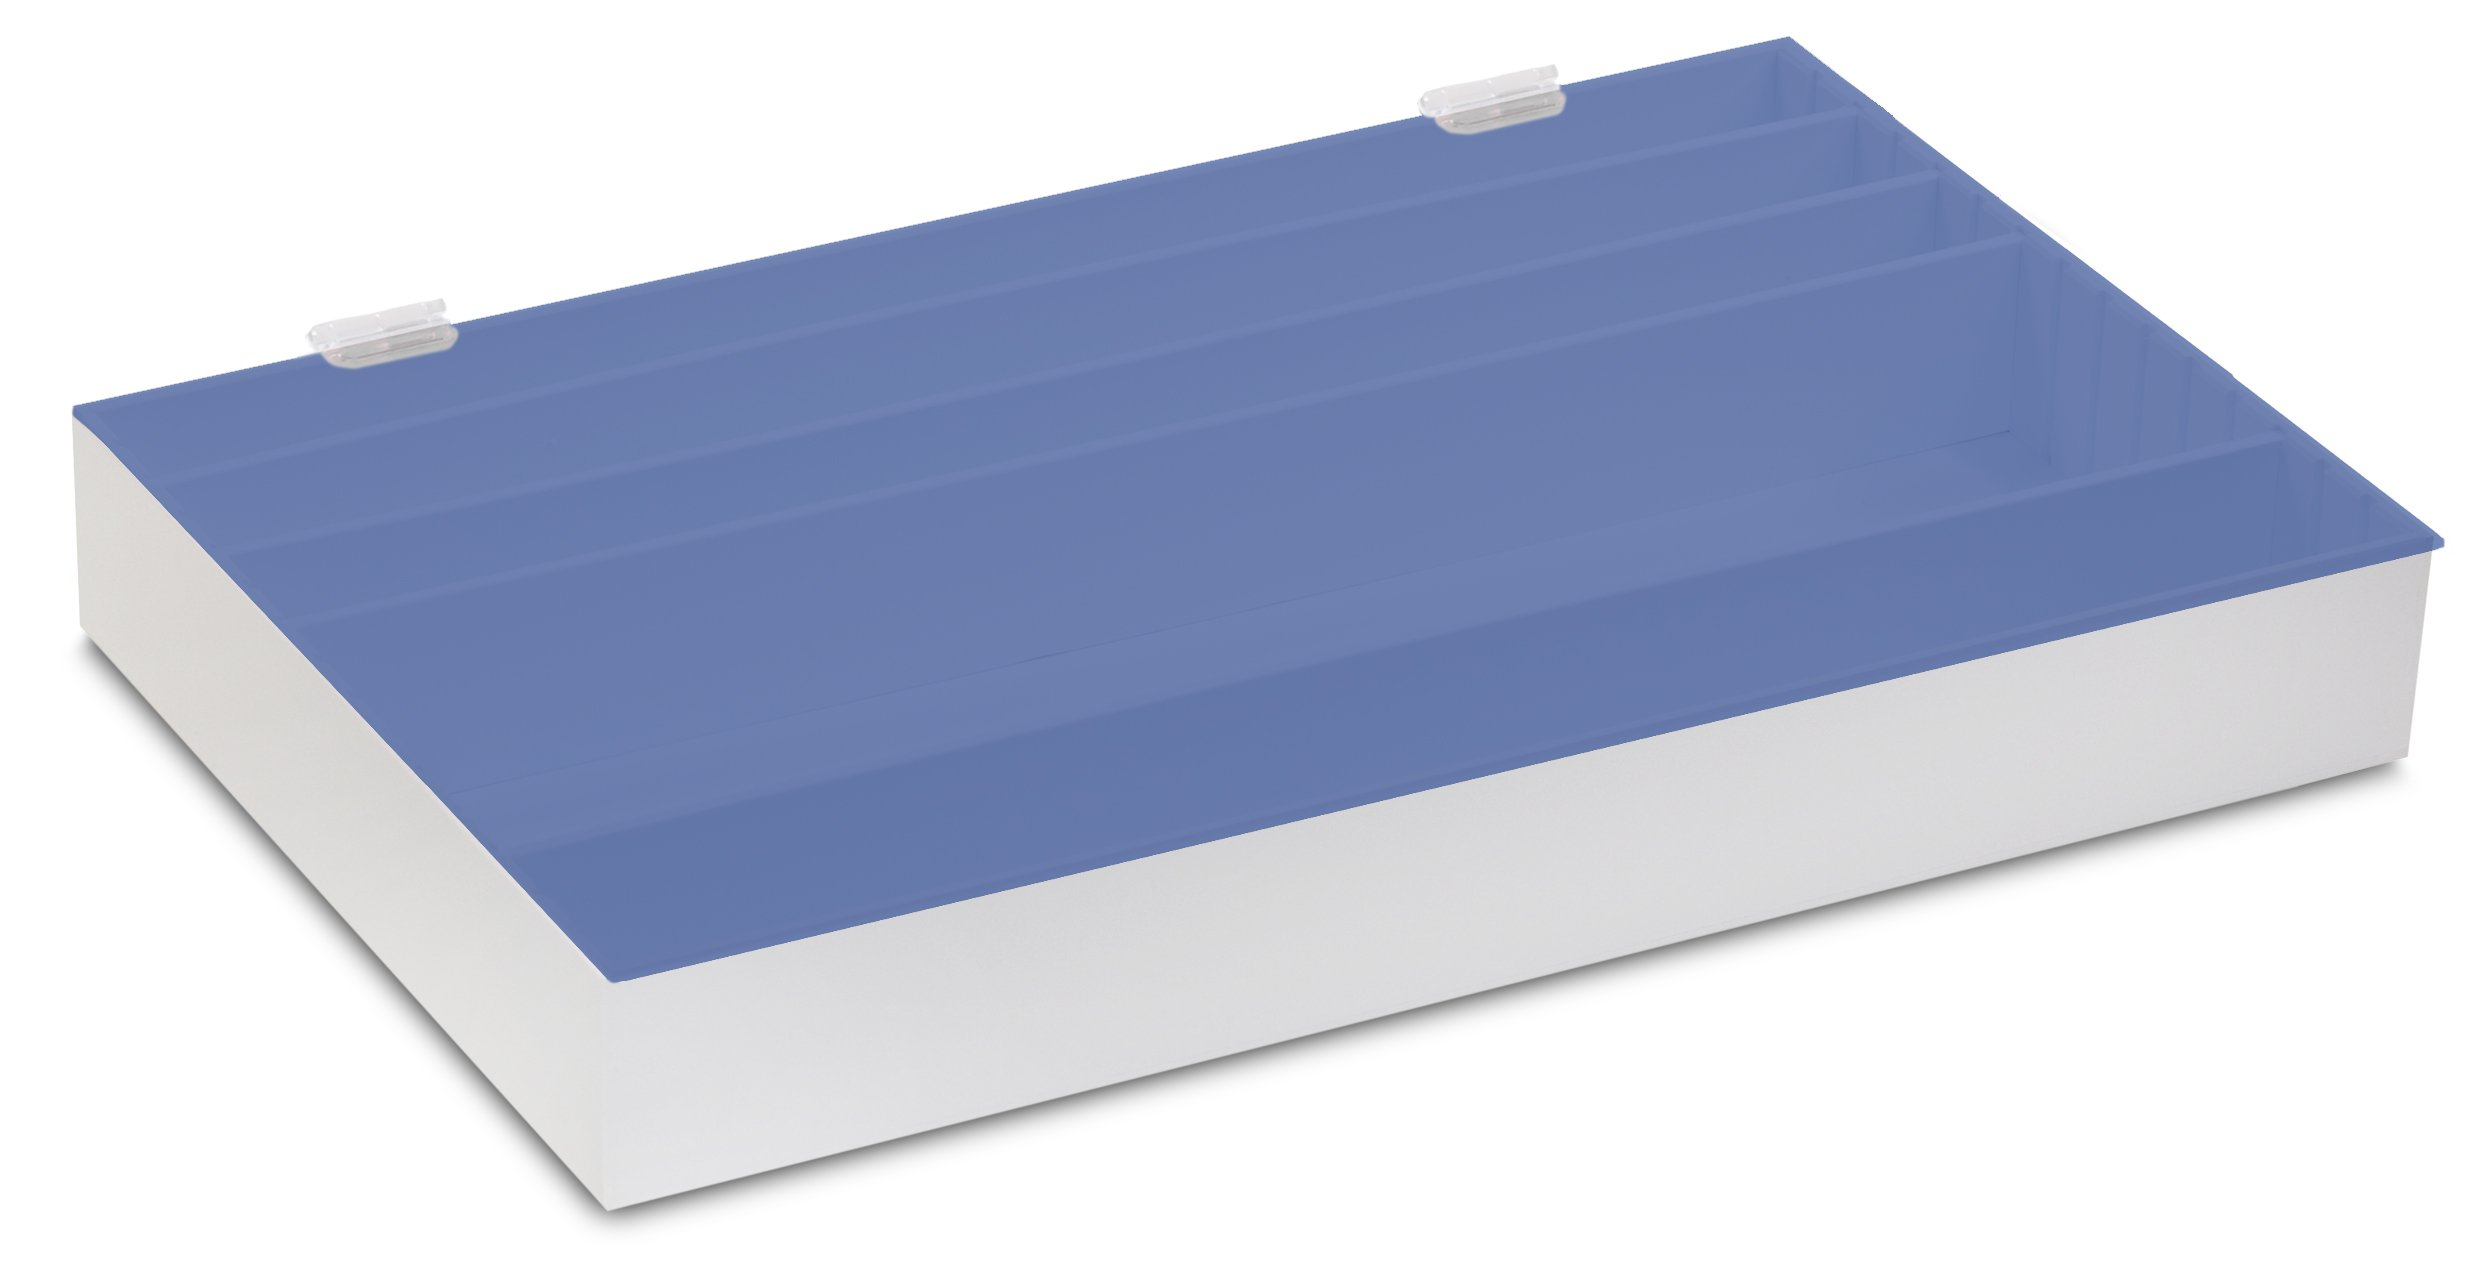 TrippNT 53061 Blue Lid PVC/Acrylic Pipet Storage Box with Adjustable Compartments, Large, 25'' Width x 3'' Height x 16'' Depth